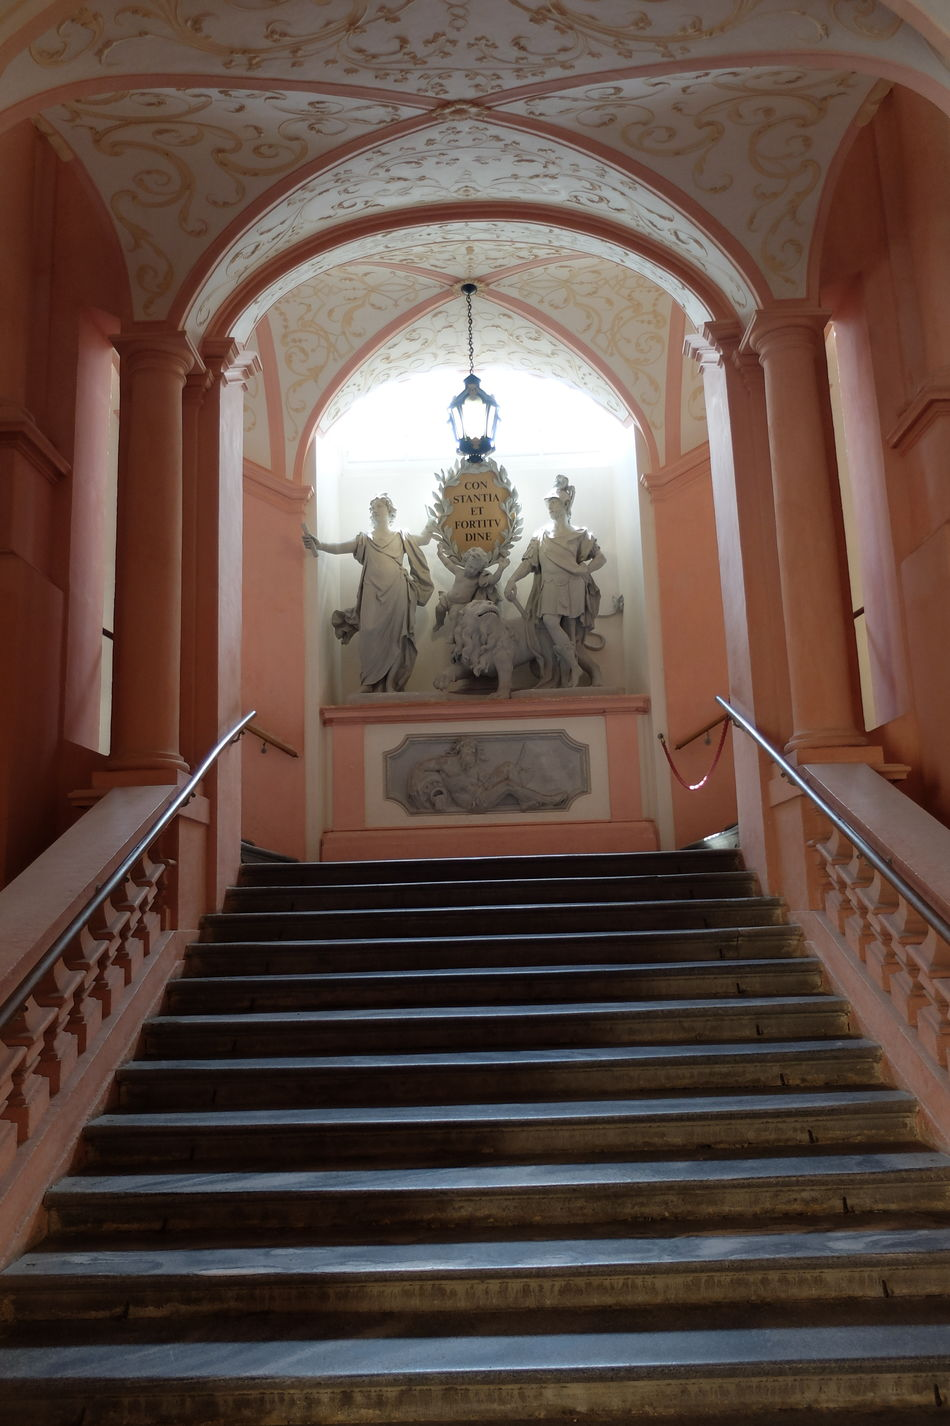 Treppen Arch Architecture Built Structure Day Indoors  Kloster Melk Melk No People Place Of Worship Religion Spirituality Staircase Steps Steps And Staircases STIFT MELK Travel Destinations